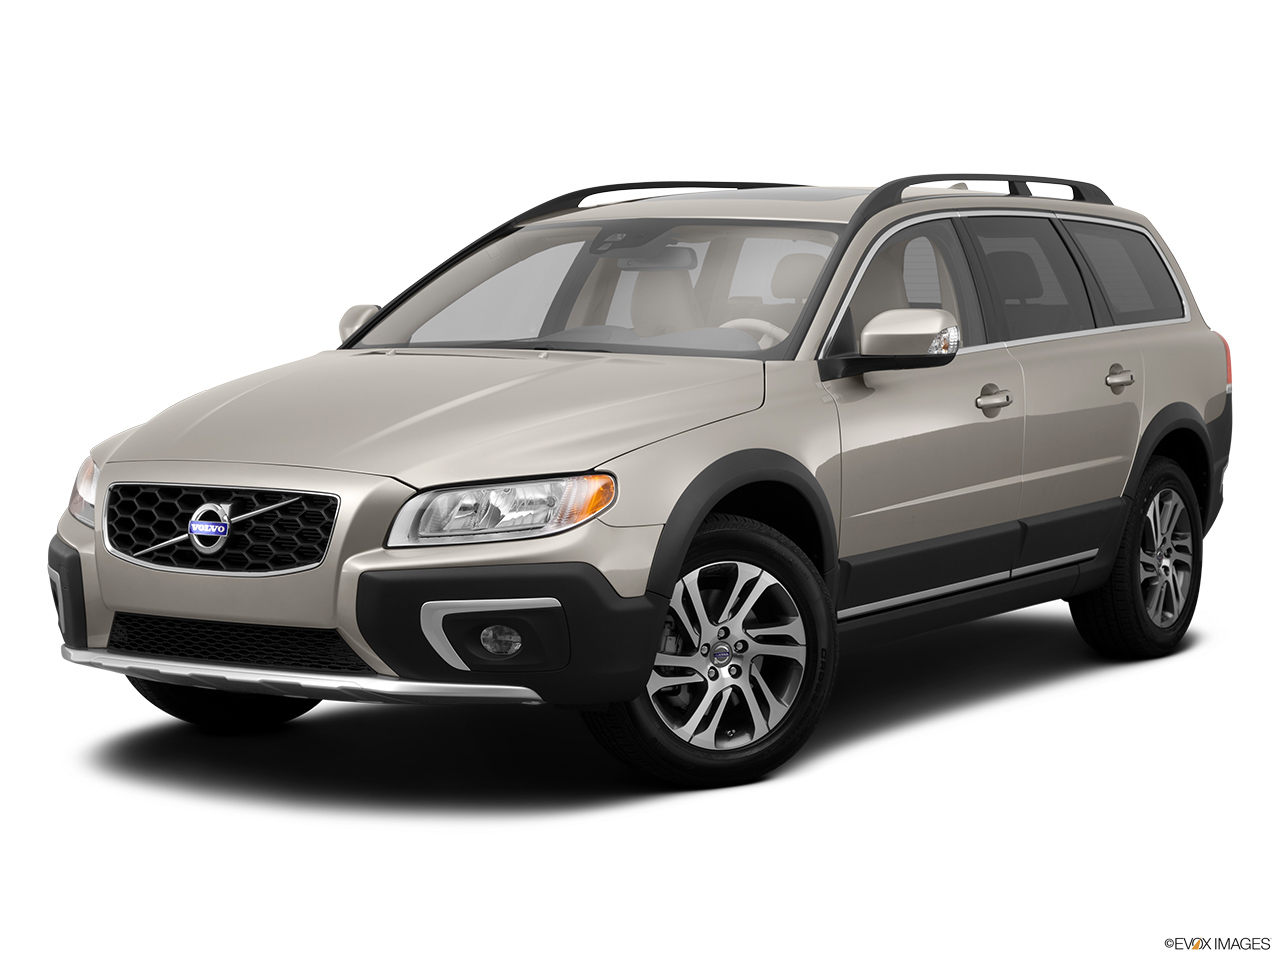 2014 Volvo XC70 3.2 AWD Premier Plus Front angle medium view.